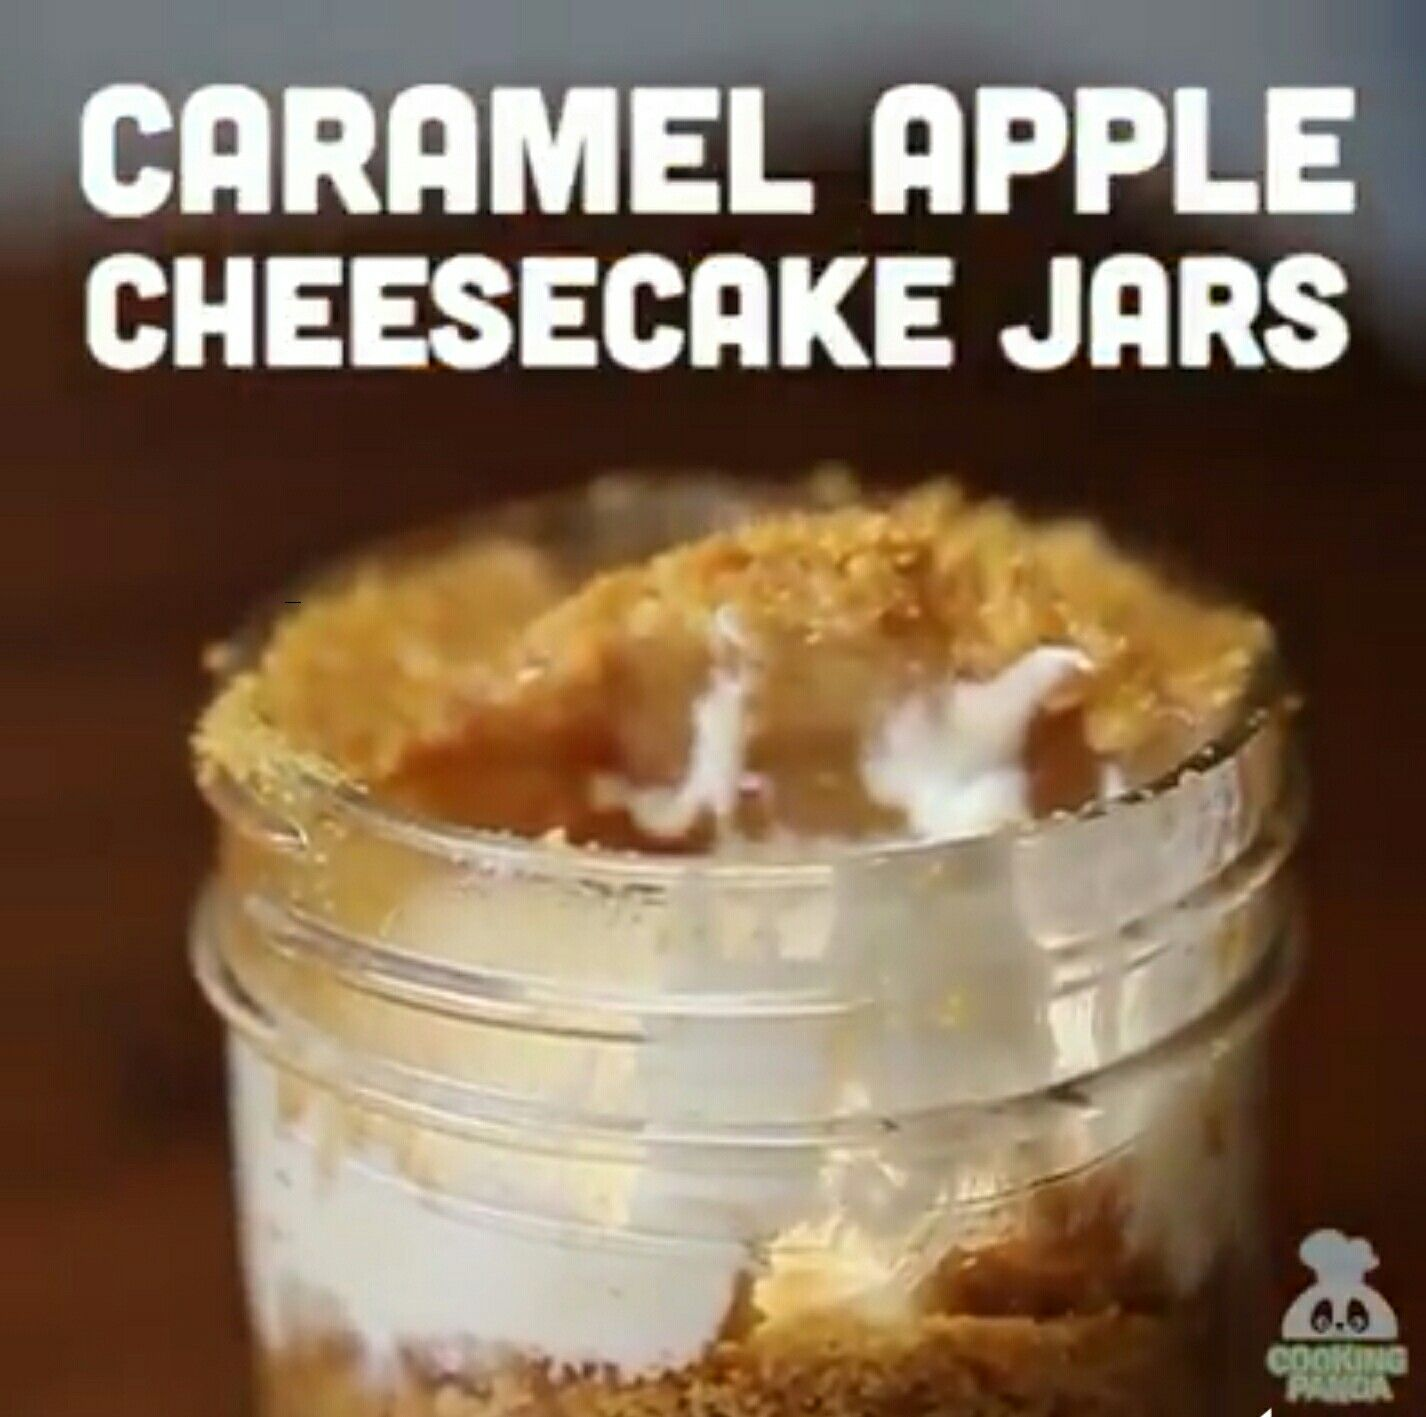 http://www.cookingpanda.com/content/get-recipe-caramel-apple-cheesecake-jars